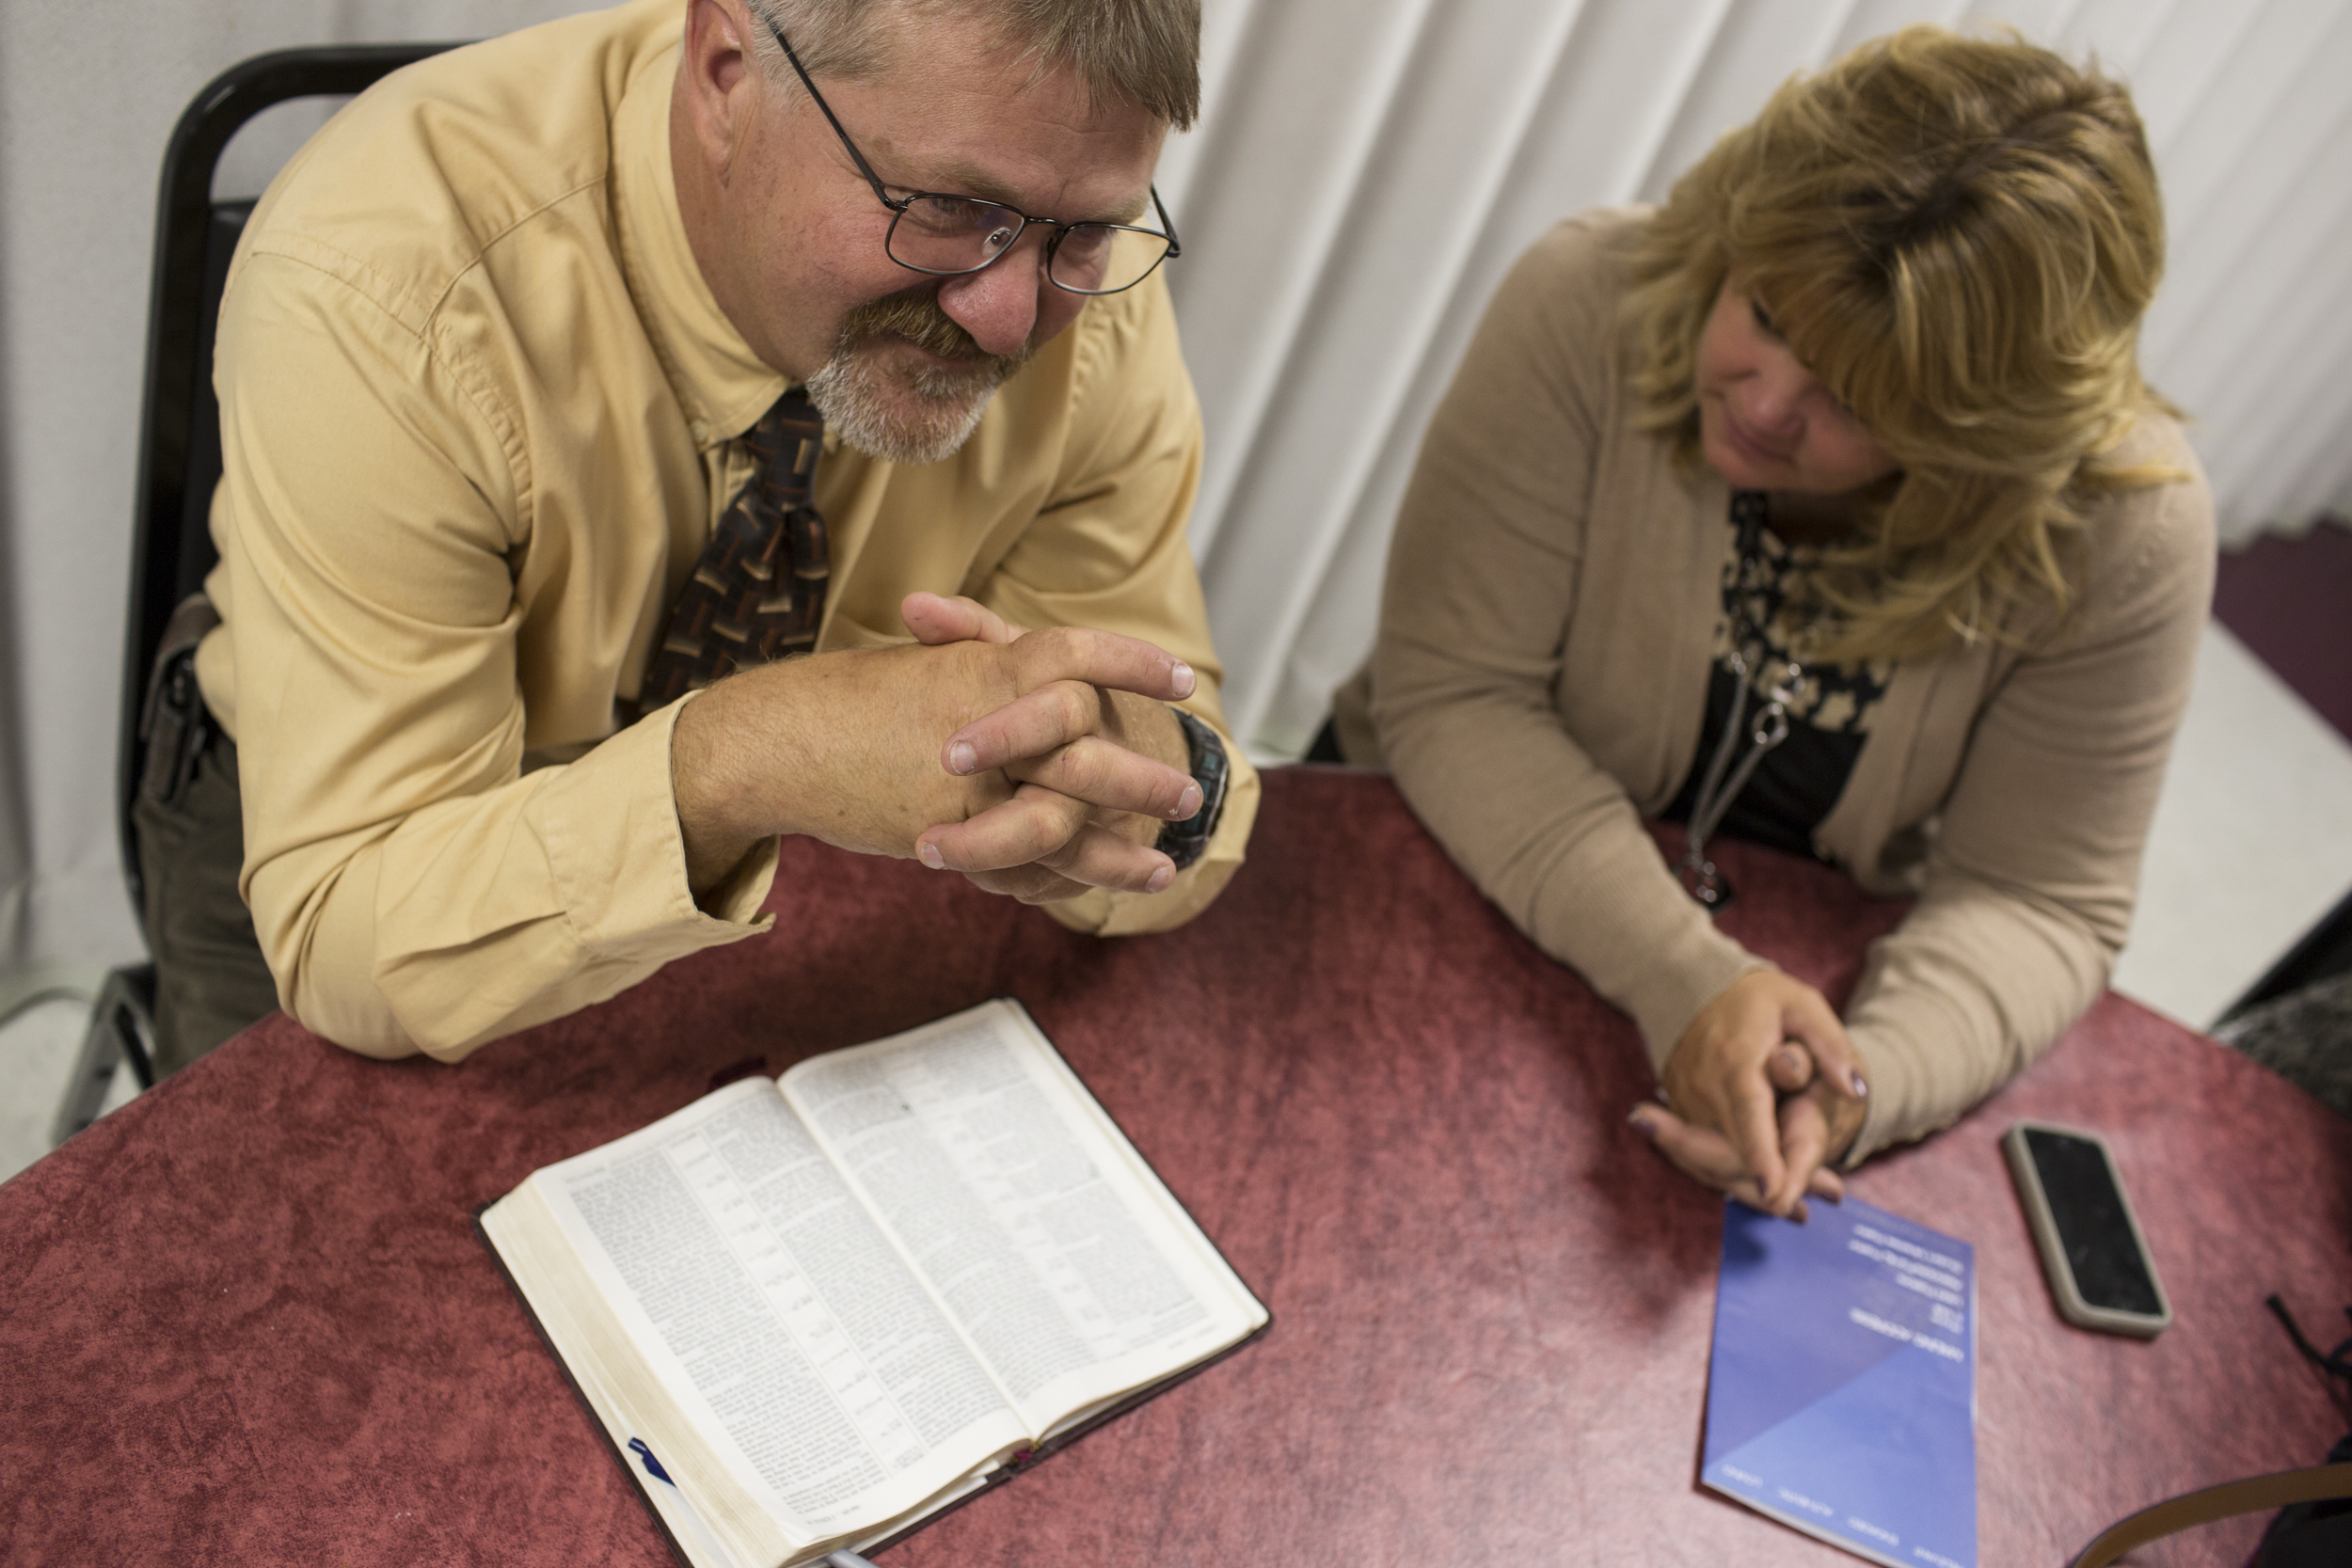 Tracy Groves and his wife Teresa listen during a bible class before a Sunday service at the Assembly of God church in Ellicott City, Maryland.